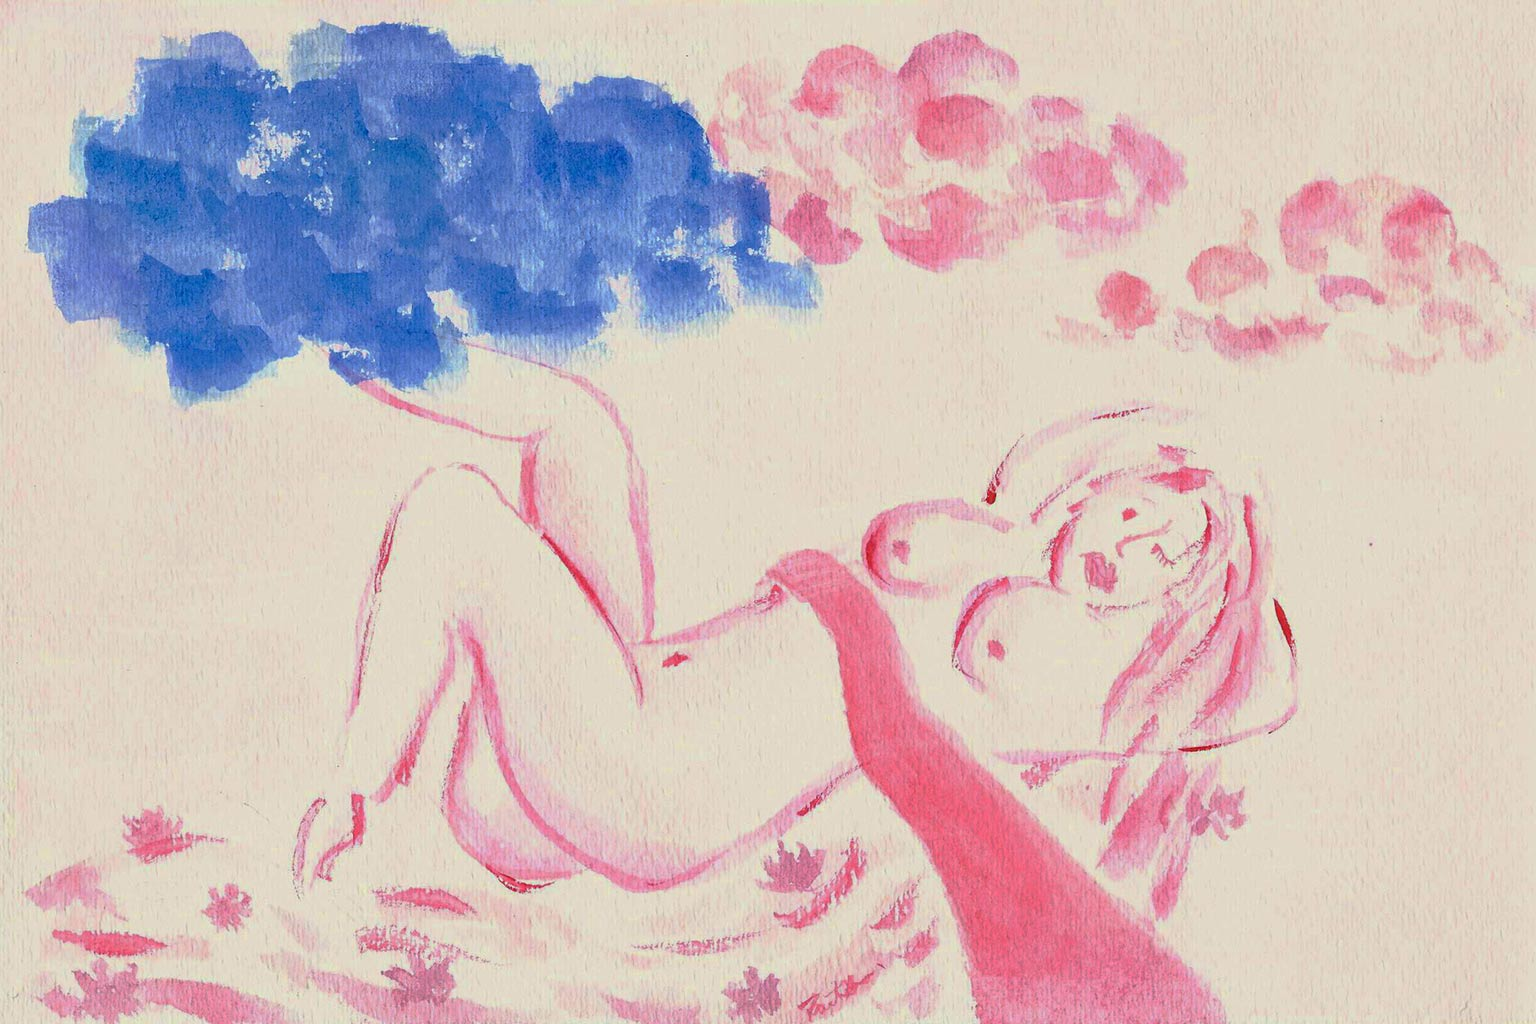 watercolor painting of woman reclining with blue and pink clouds